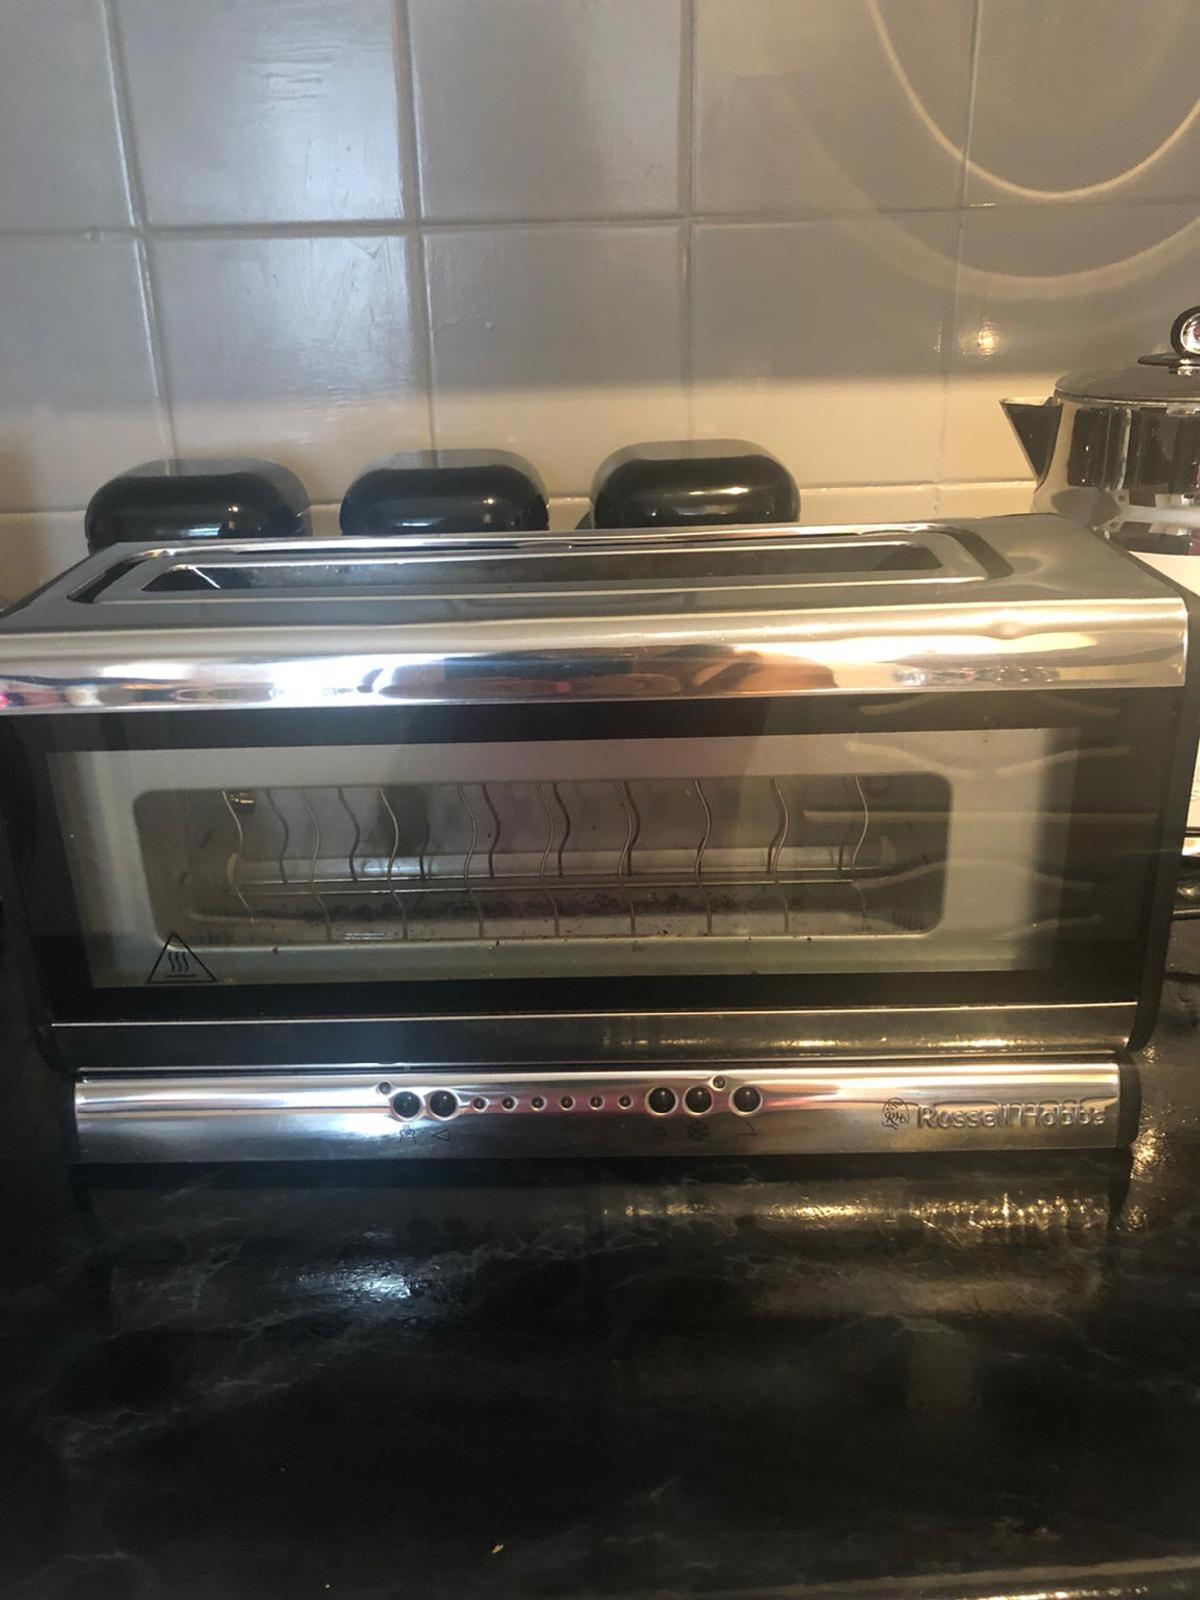 Russell Hobbs toaster. Good condition and clean